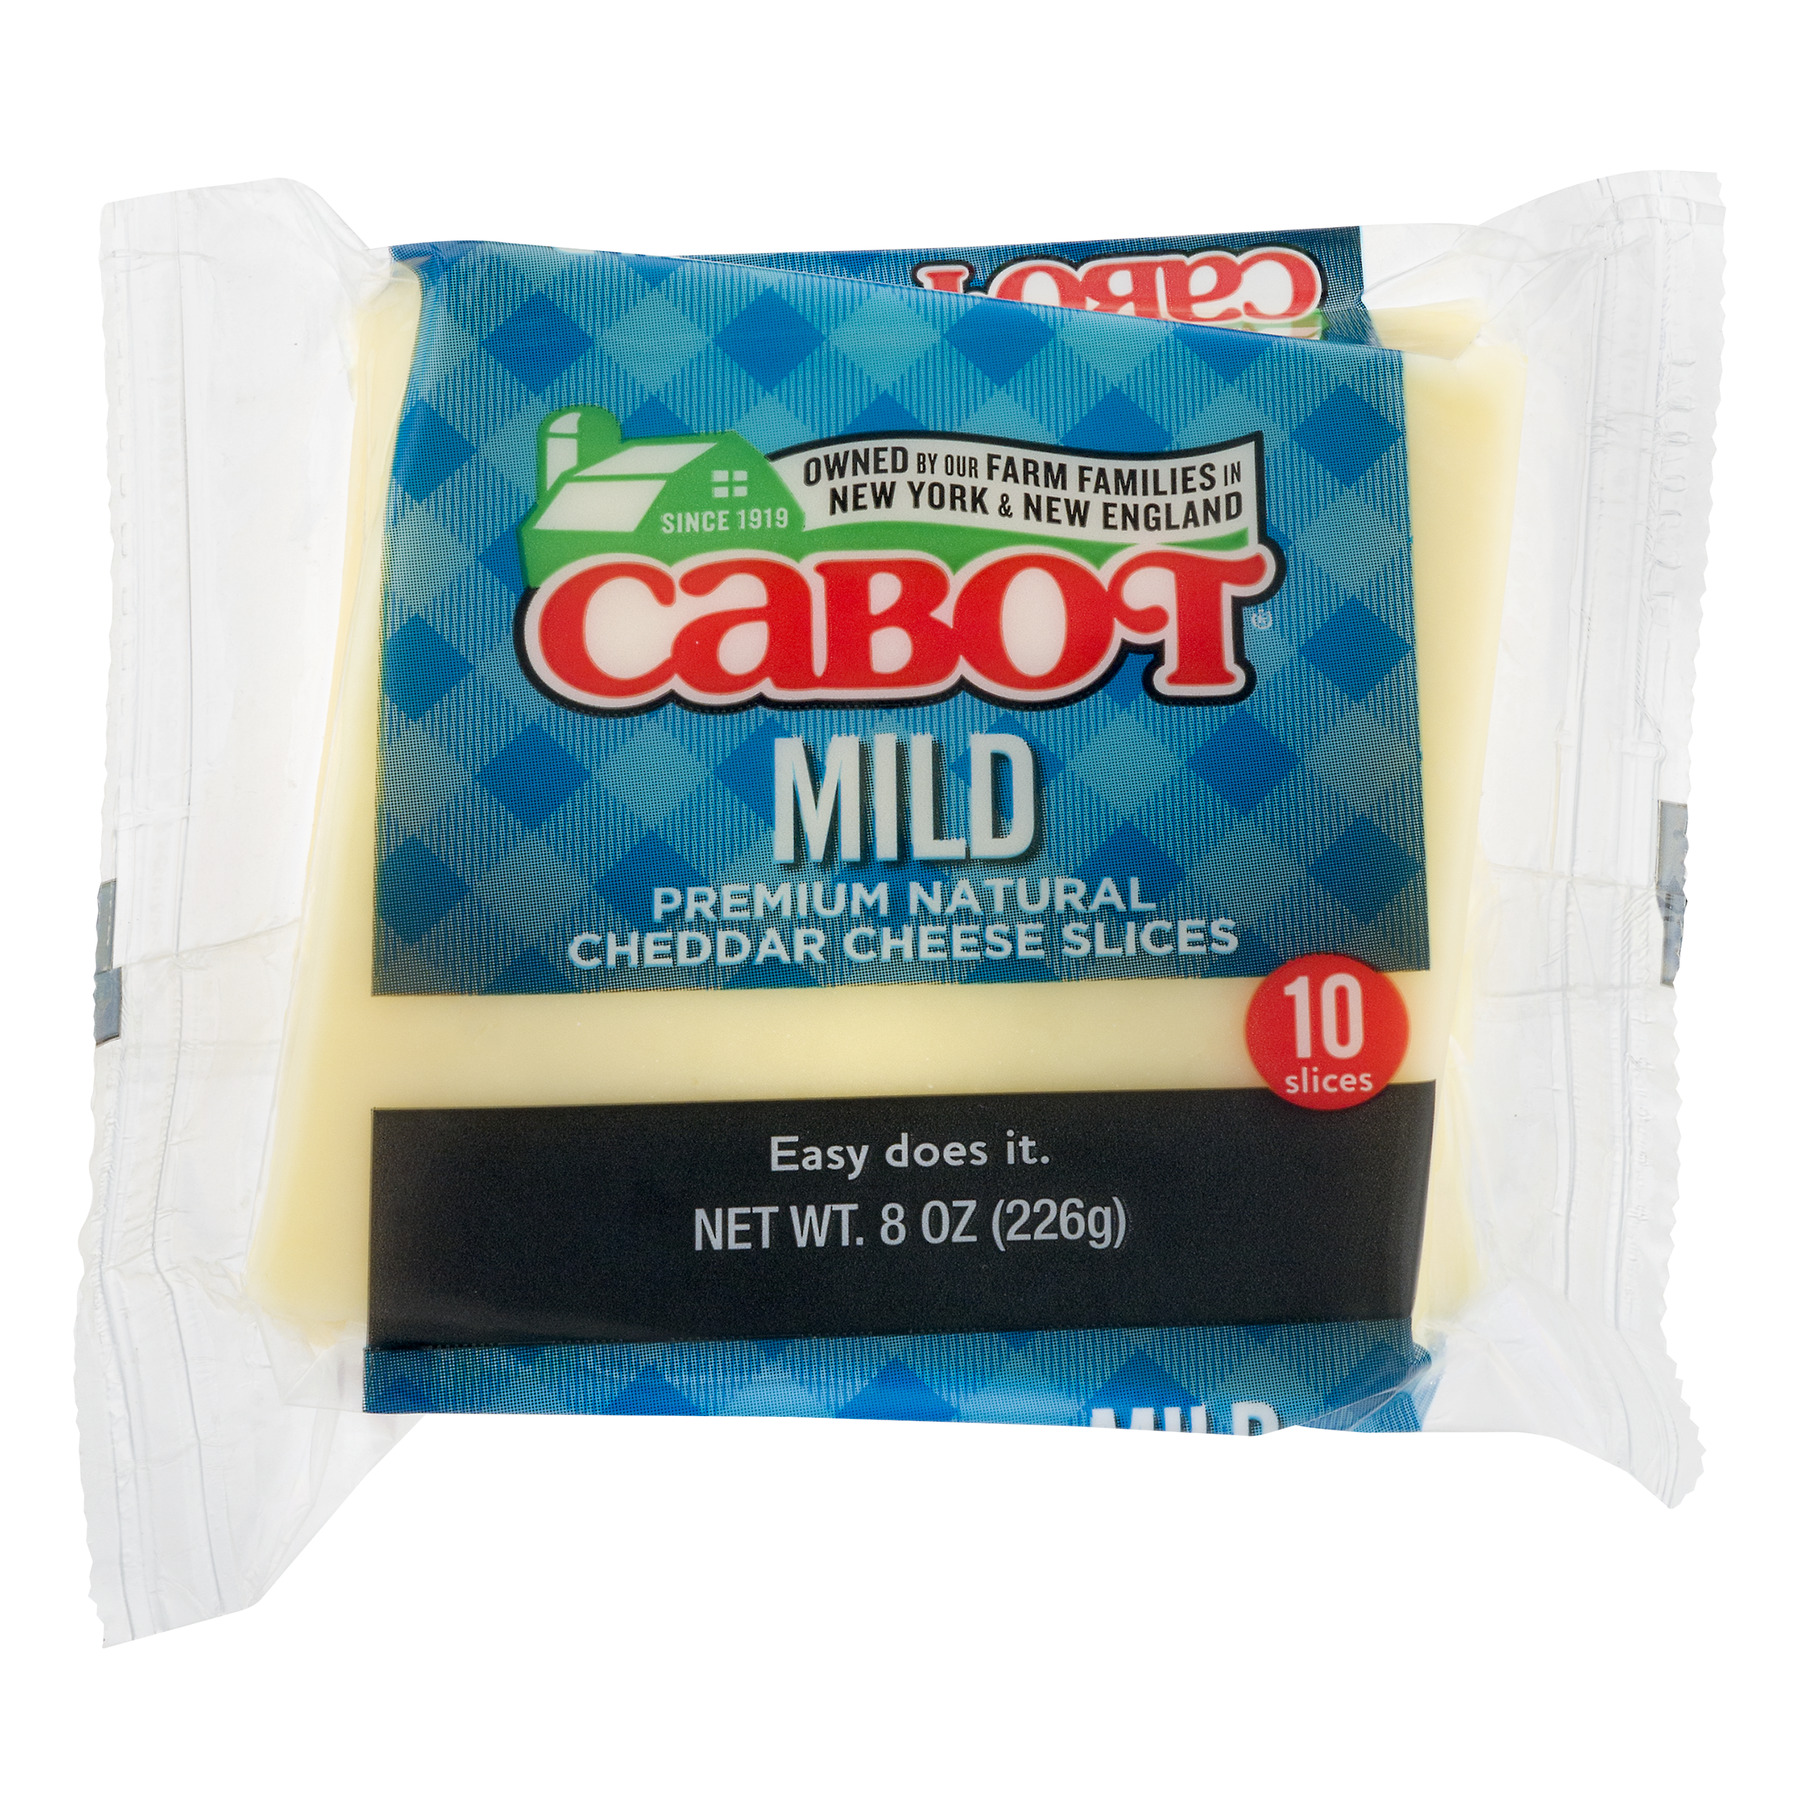 Cabot Mild Cheddar Cheese Slices - 10 CT8.0 OZ